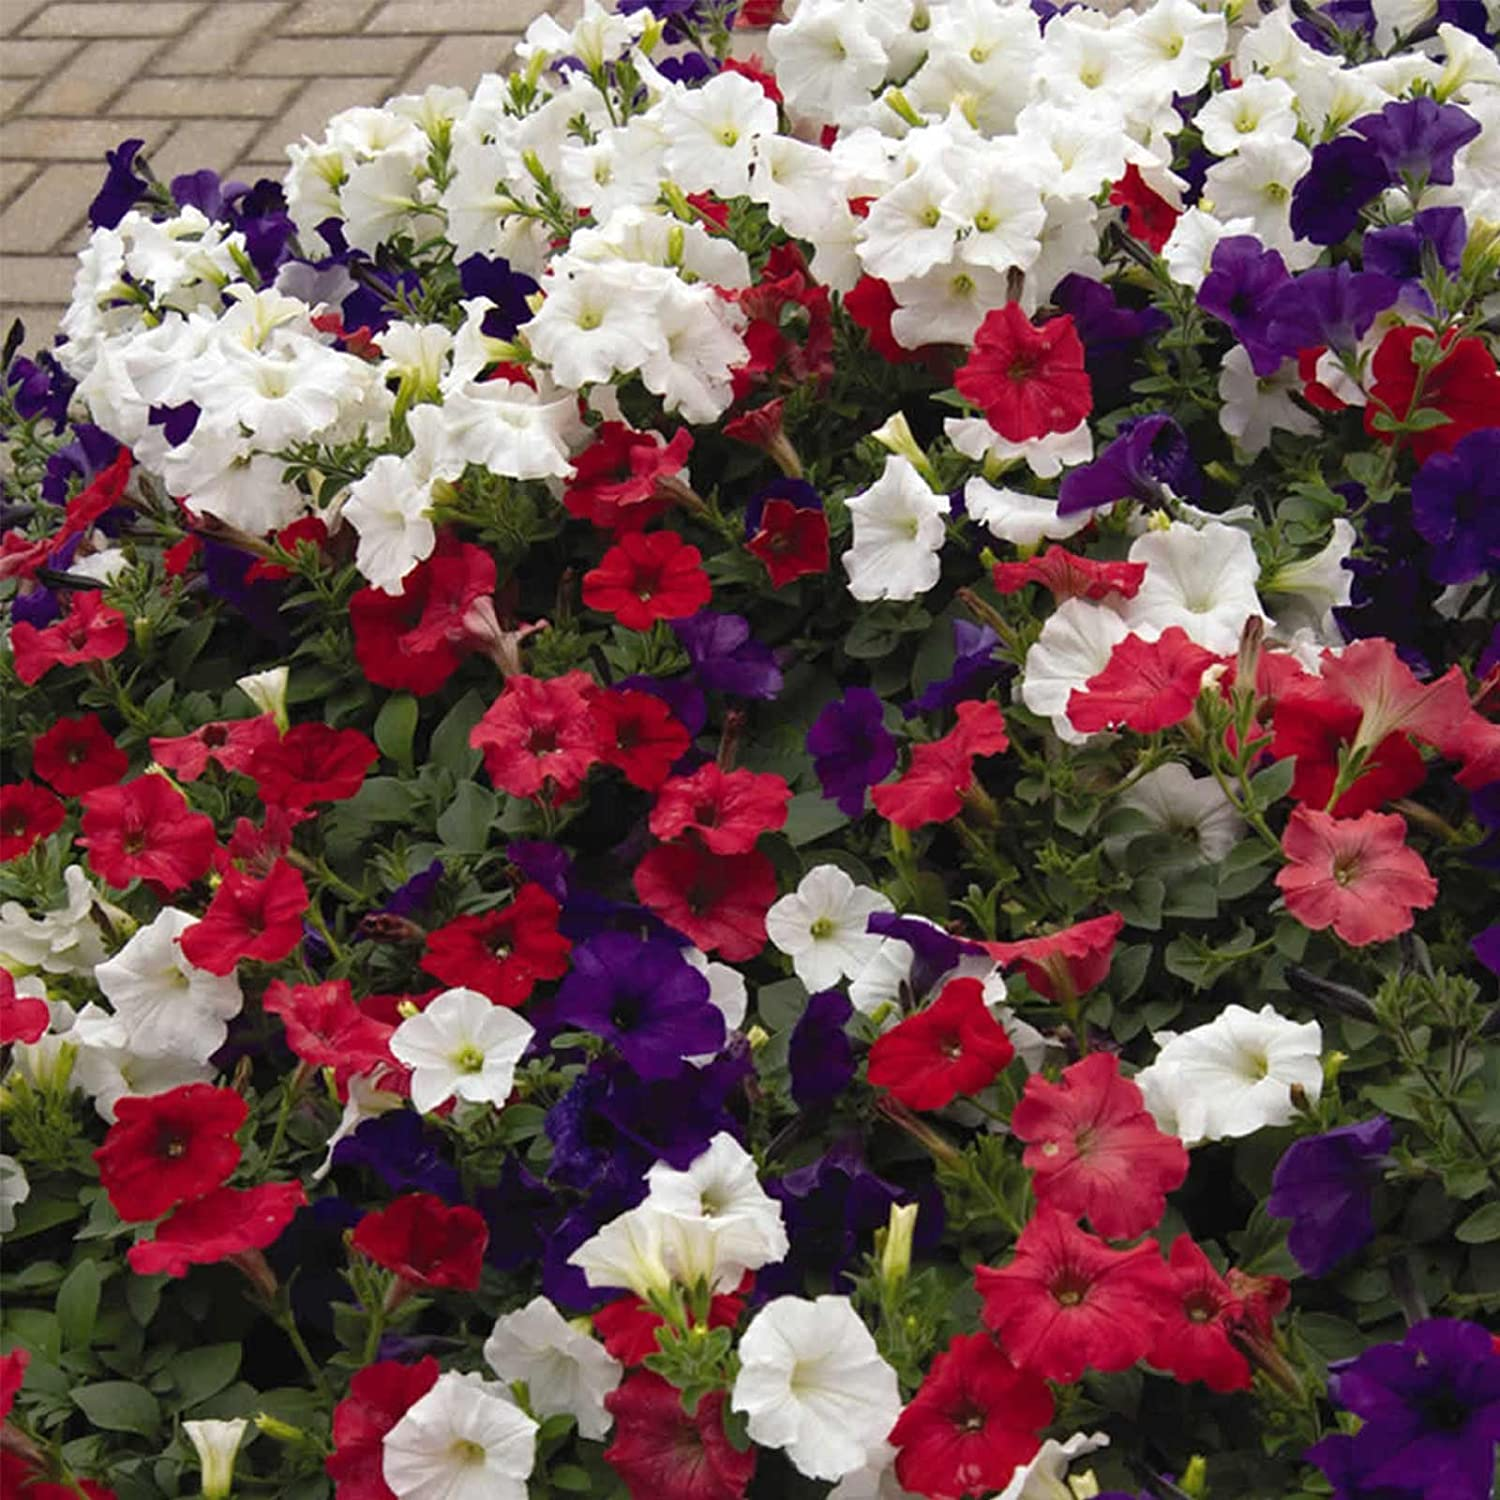 Petunia - Easy Wave Flower Garden Seed - 100 Pelleted Seeds - Flag Mix Blooms - Annual Flowers - Spreading Low Growing Petunias